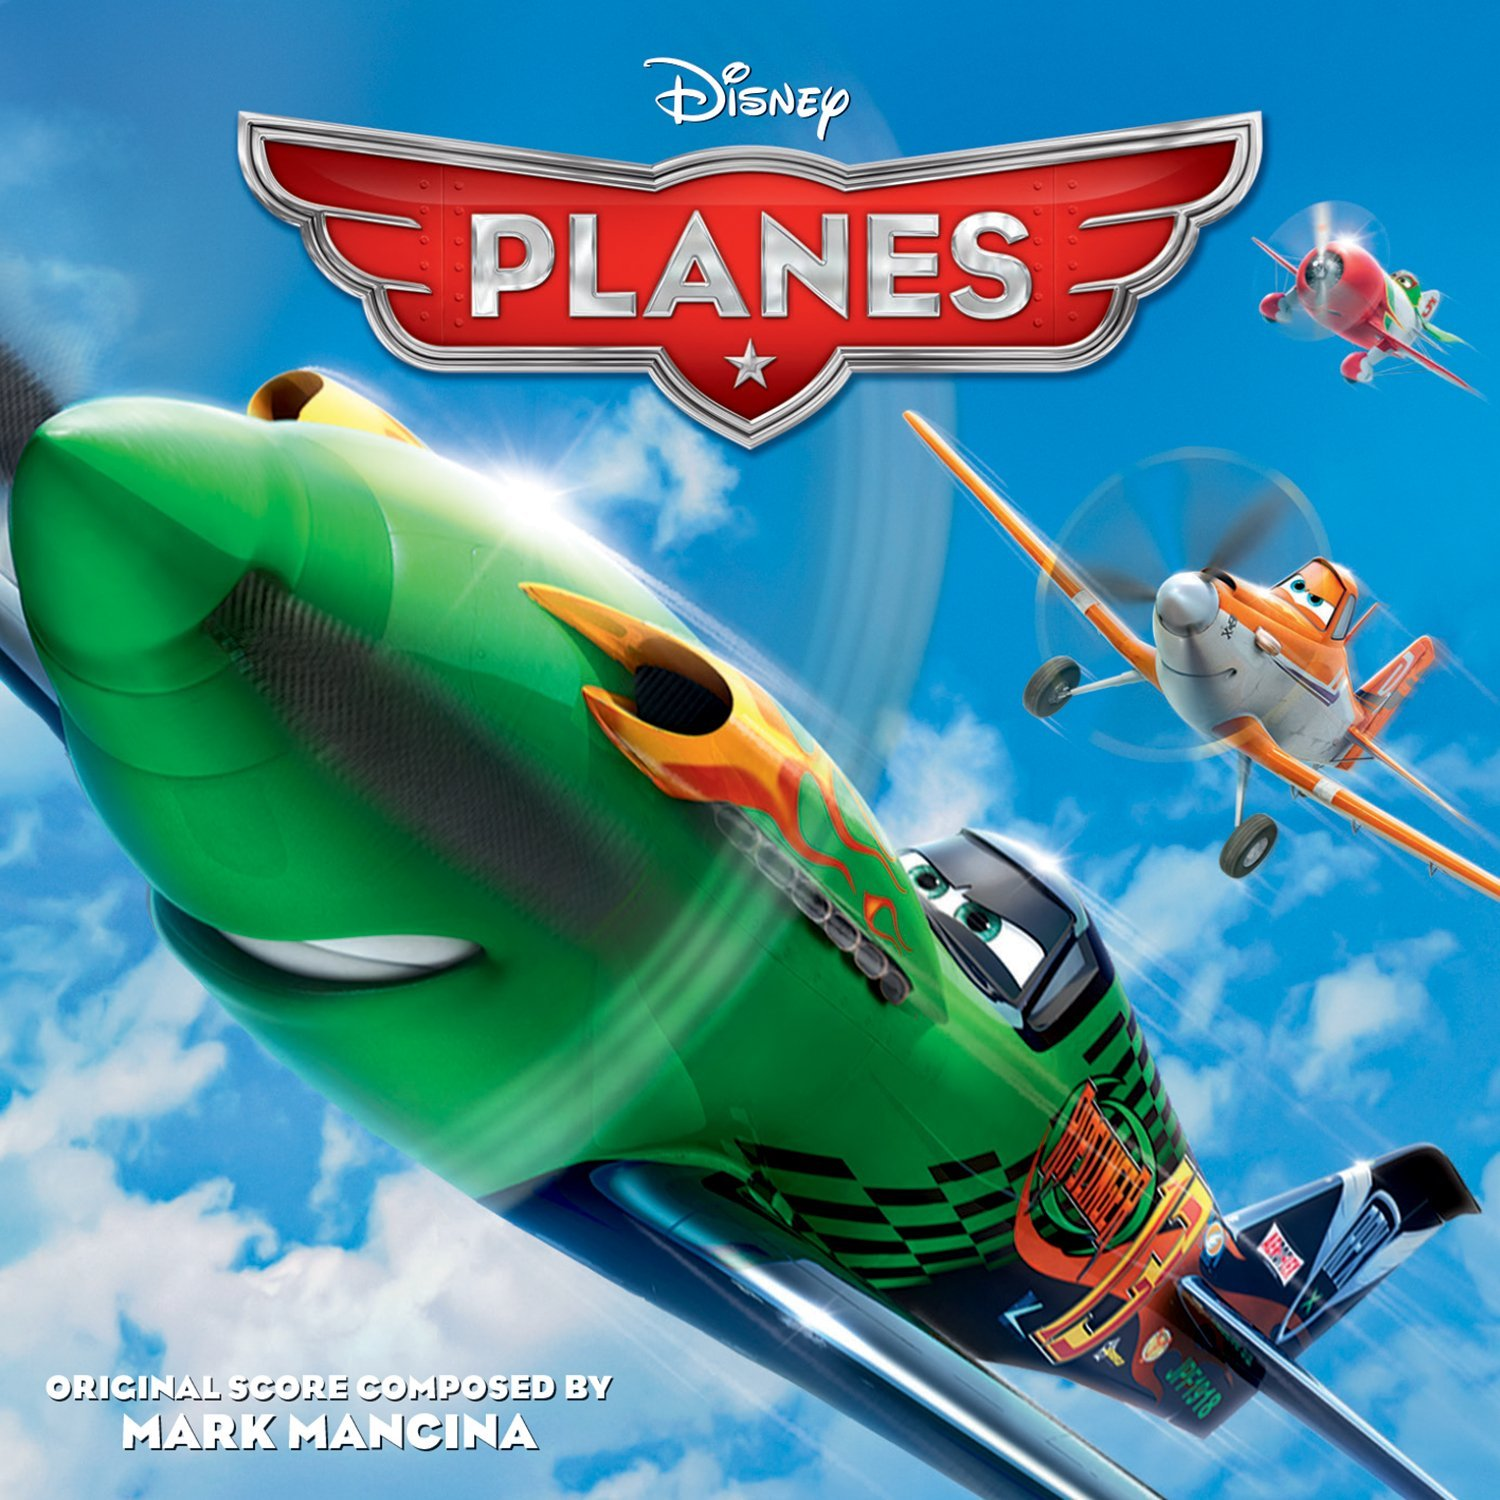 Disney Planes Soundtrack In The Playroom